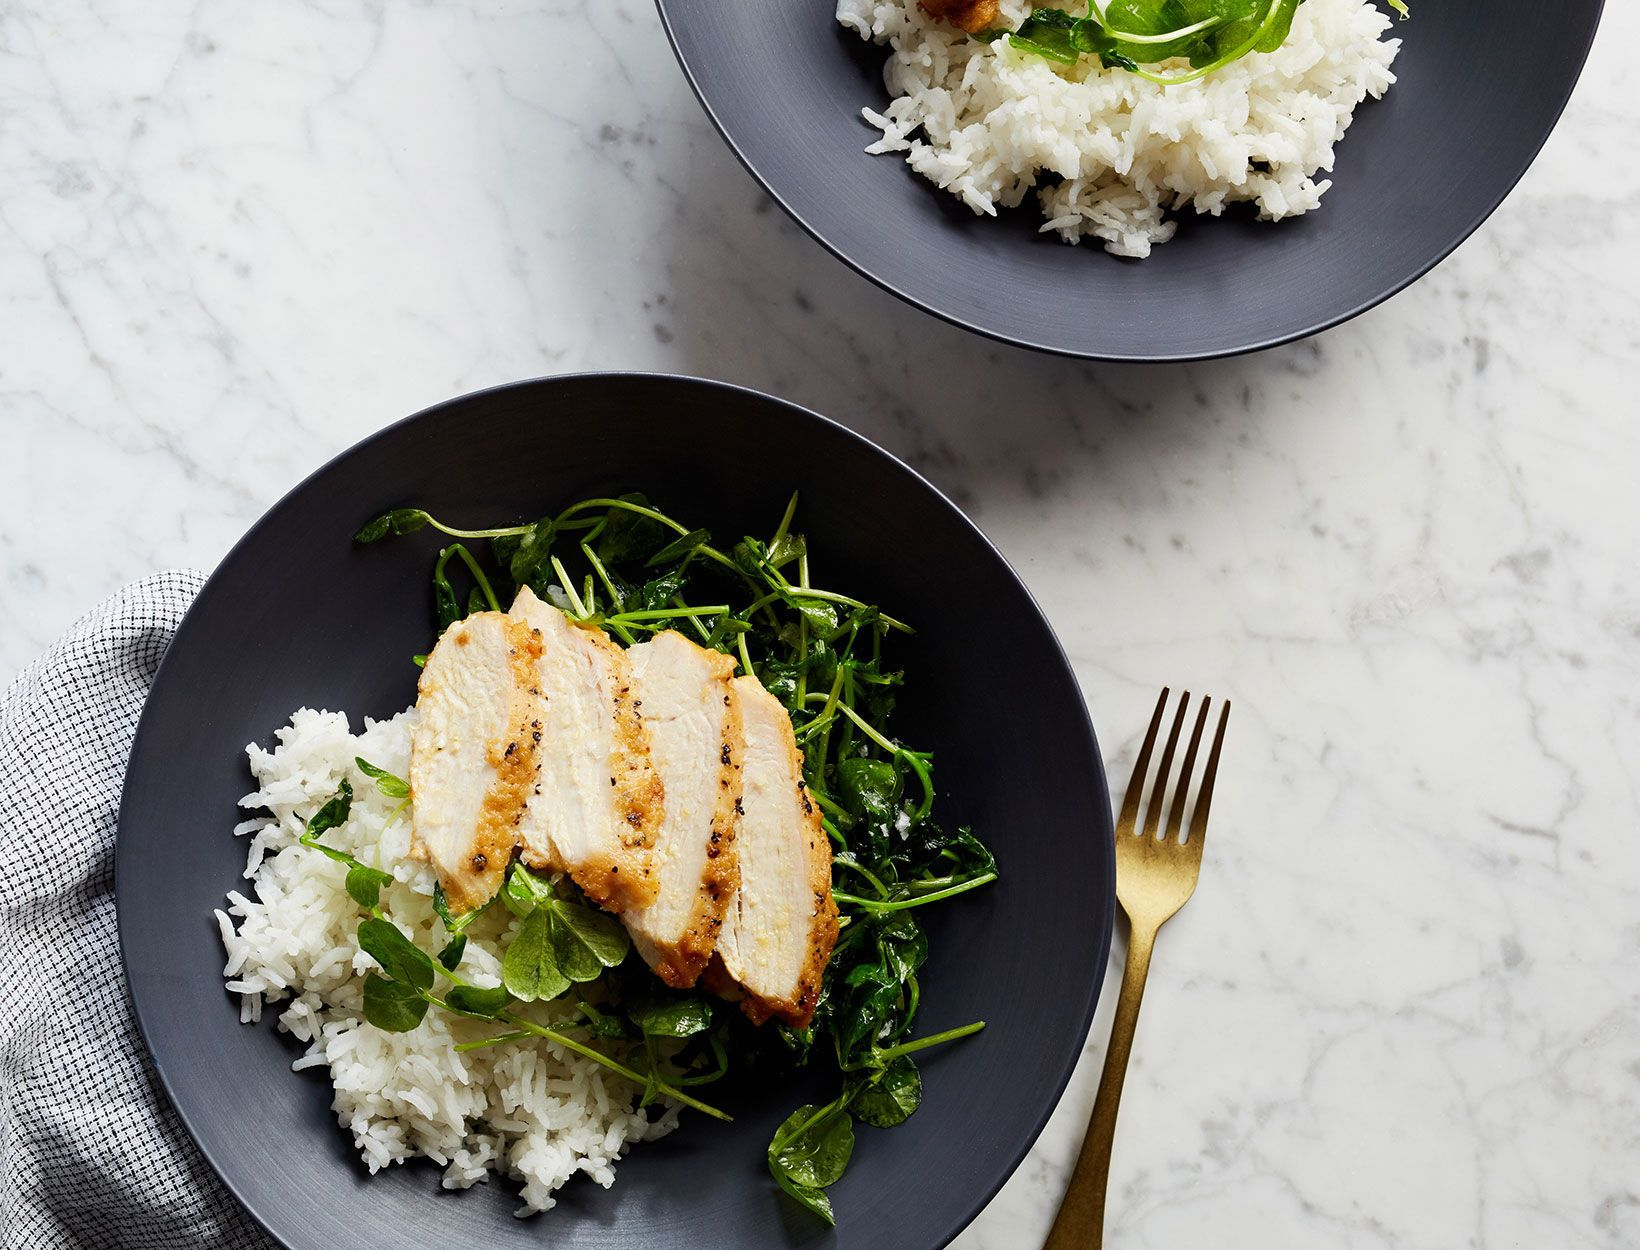 Crispy Chicken with Garlicky Pea Shoots